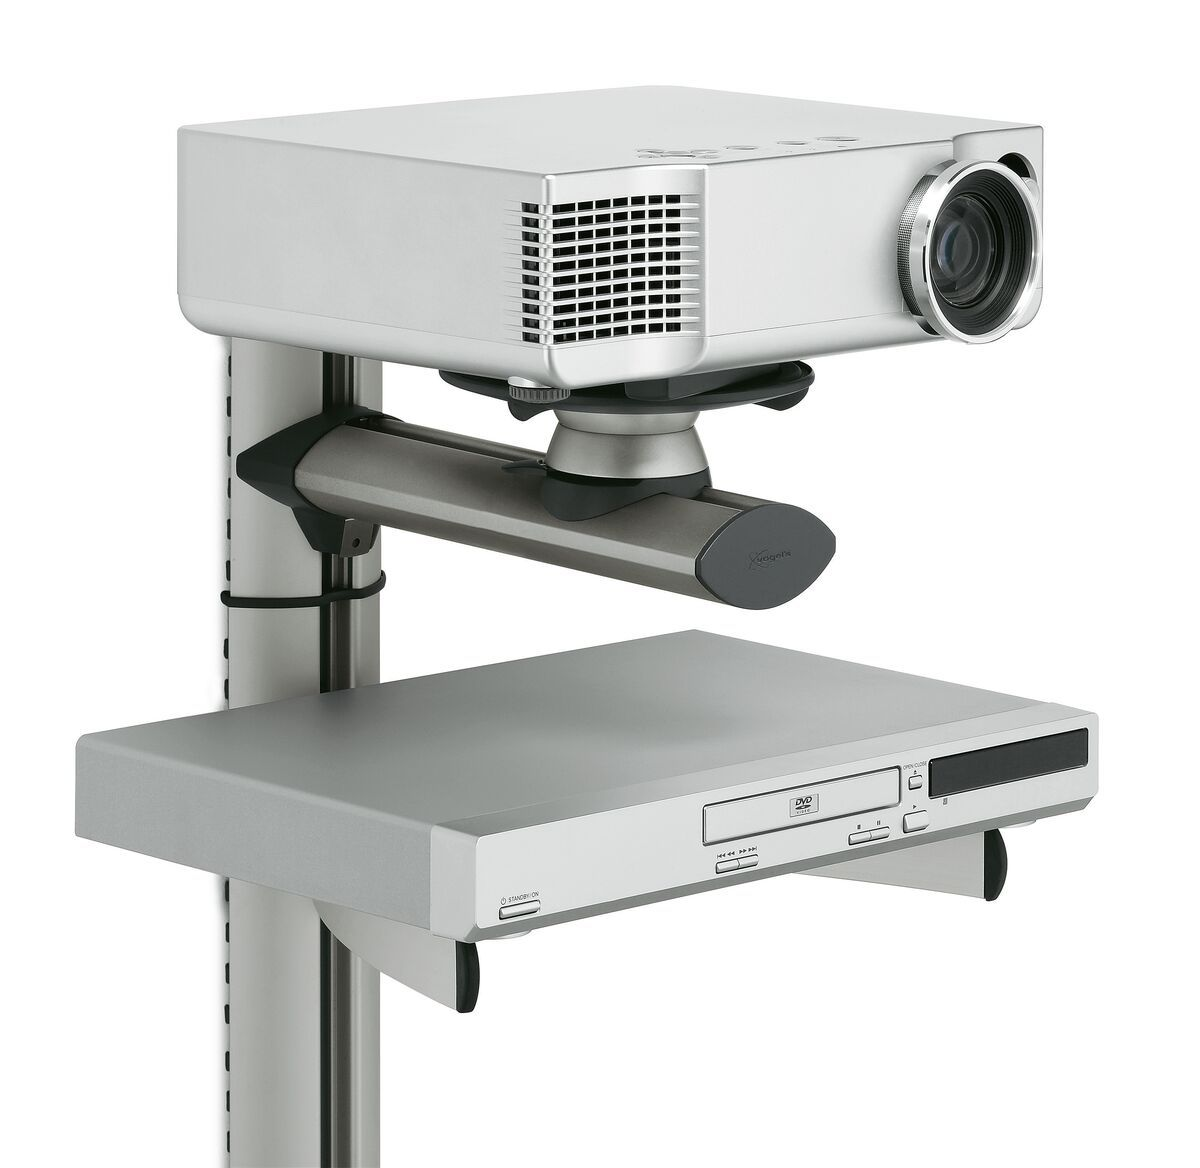 Vogel's EPW 6565 Projector Wall Mount - Maks. vægtbelastning: 10 kg - Application